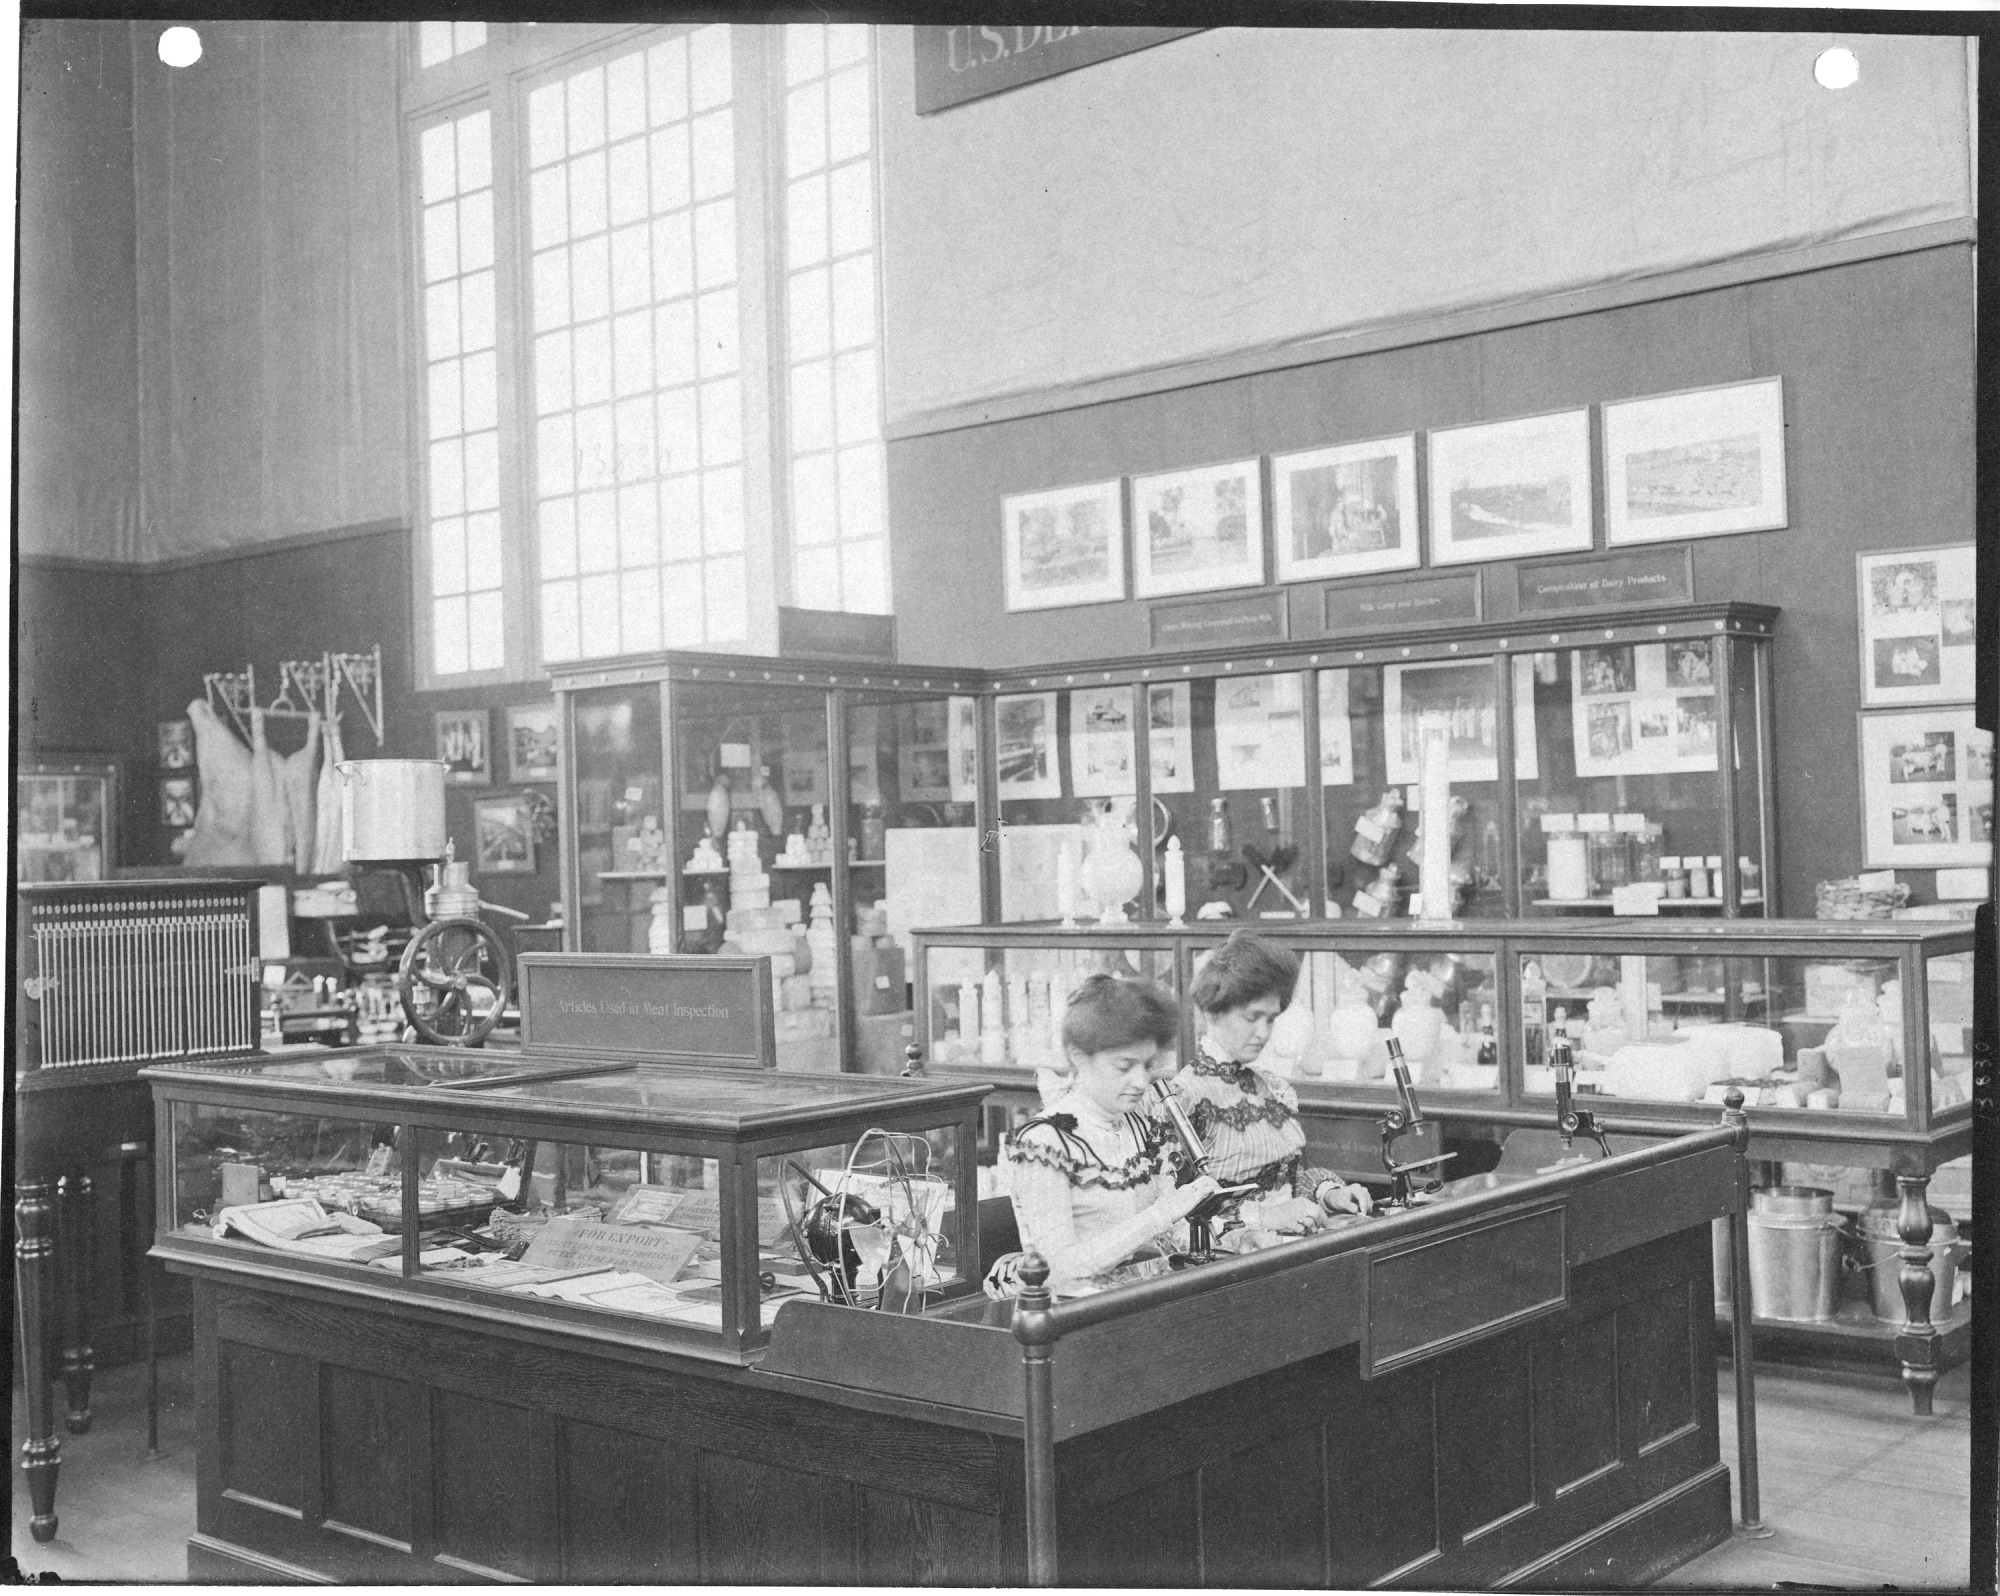 Pan-American Exposition, Buffalo, New York, 1901, Department of Agriculture display, food and drug inspections